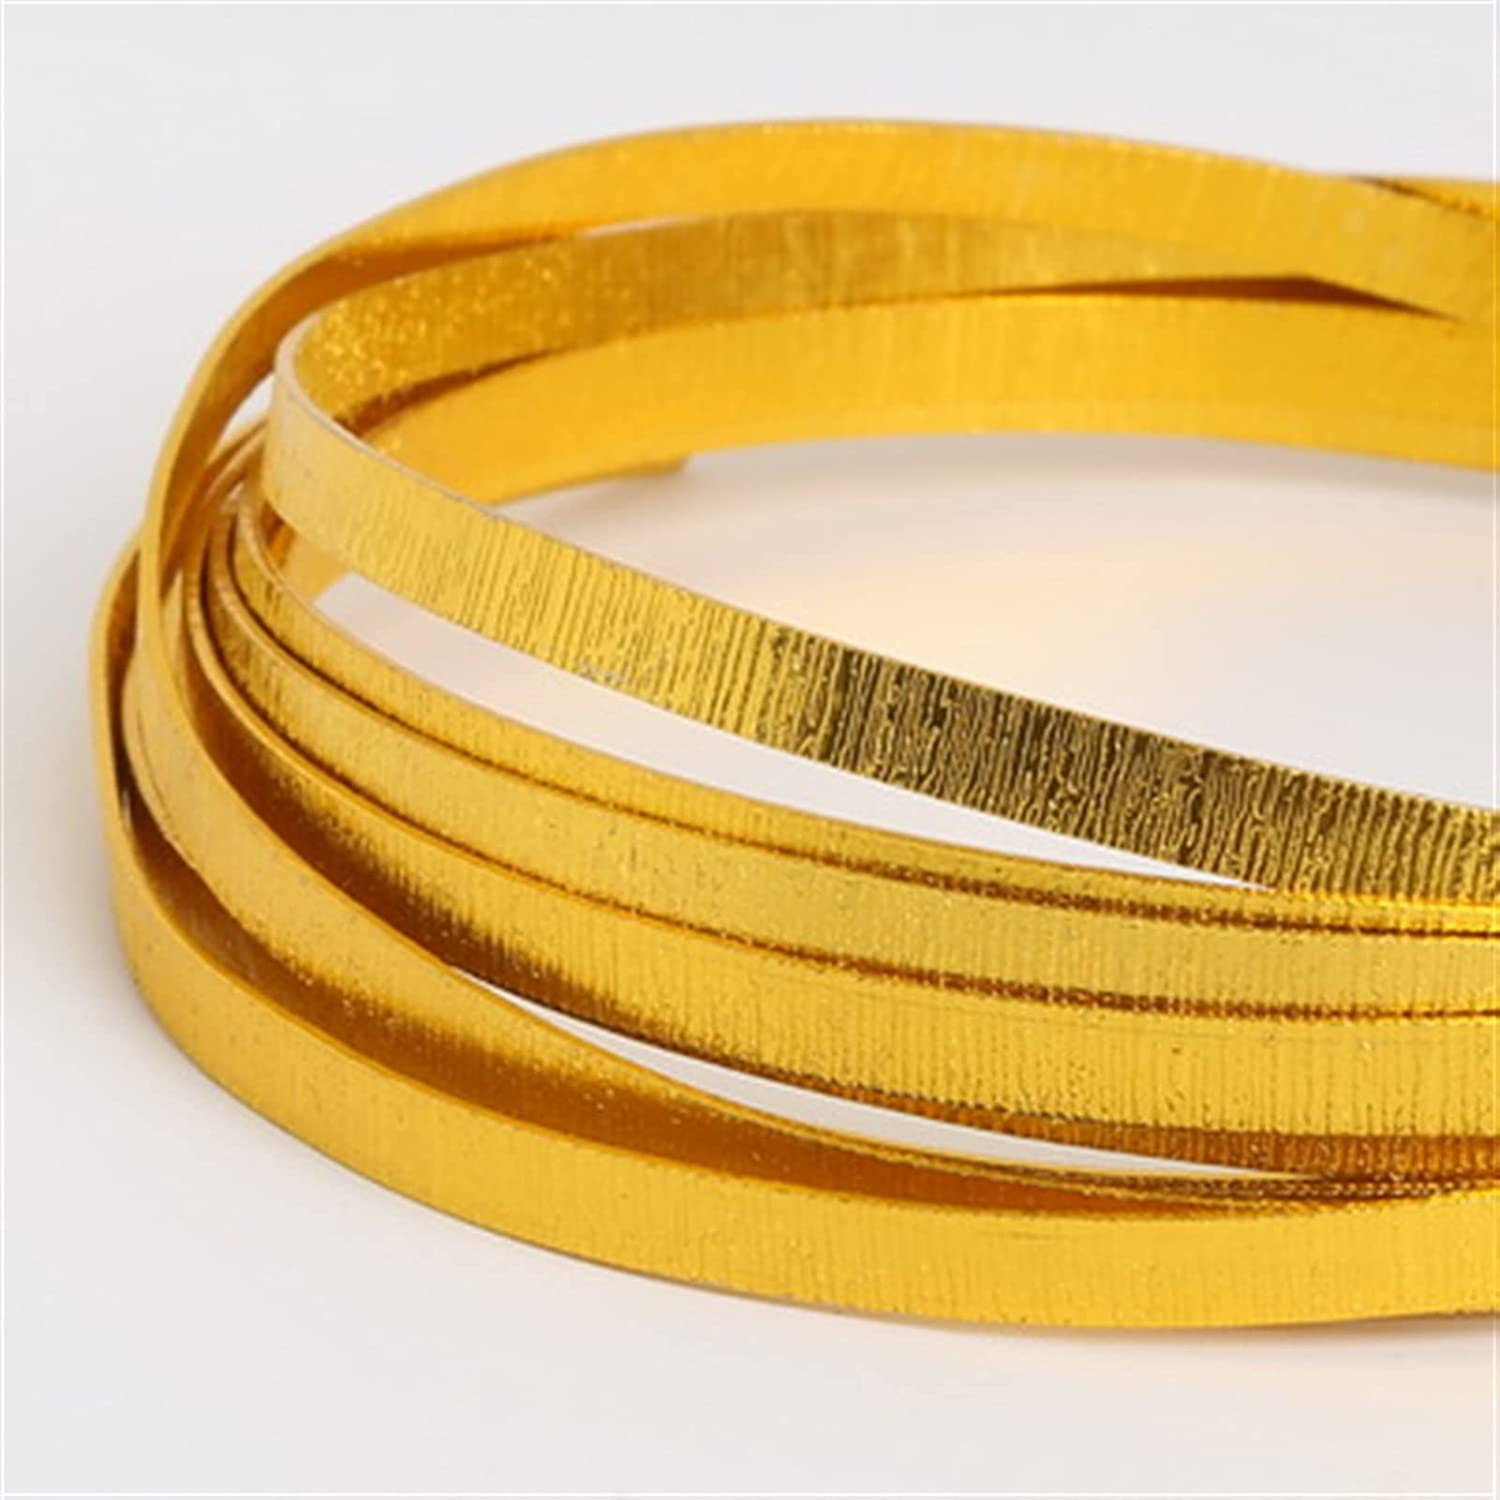 A surprise price is realized ZHBO Soft Gold Aluminium Wire Ranking TOP10 for Necklac Beading Bracelet